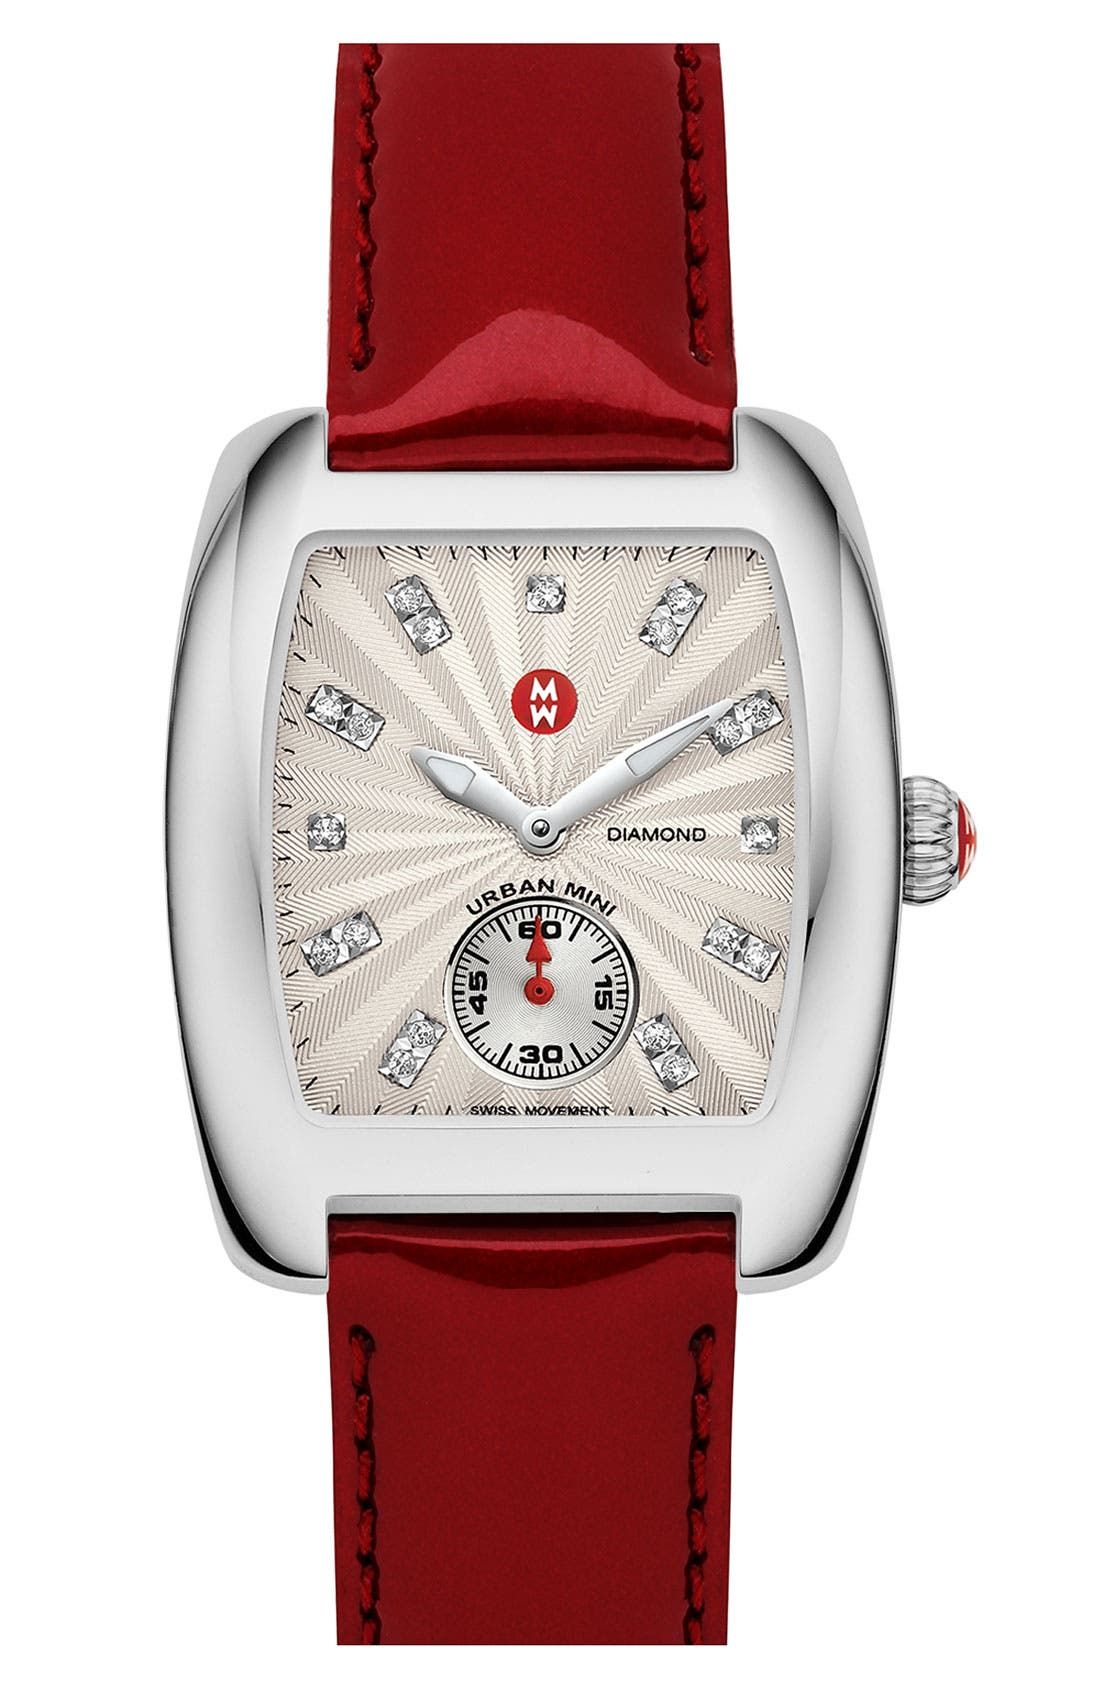 Alternate Image 1 Selected - MICHELE 'Urban Mini' Diamond Dial Watch Case & 16mm Scarlet Patent Leather Strap